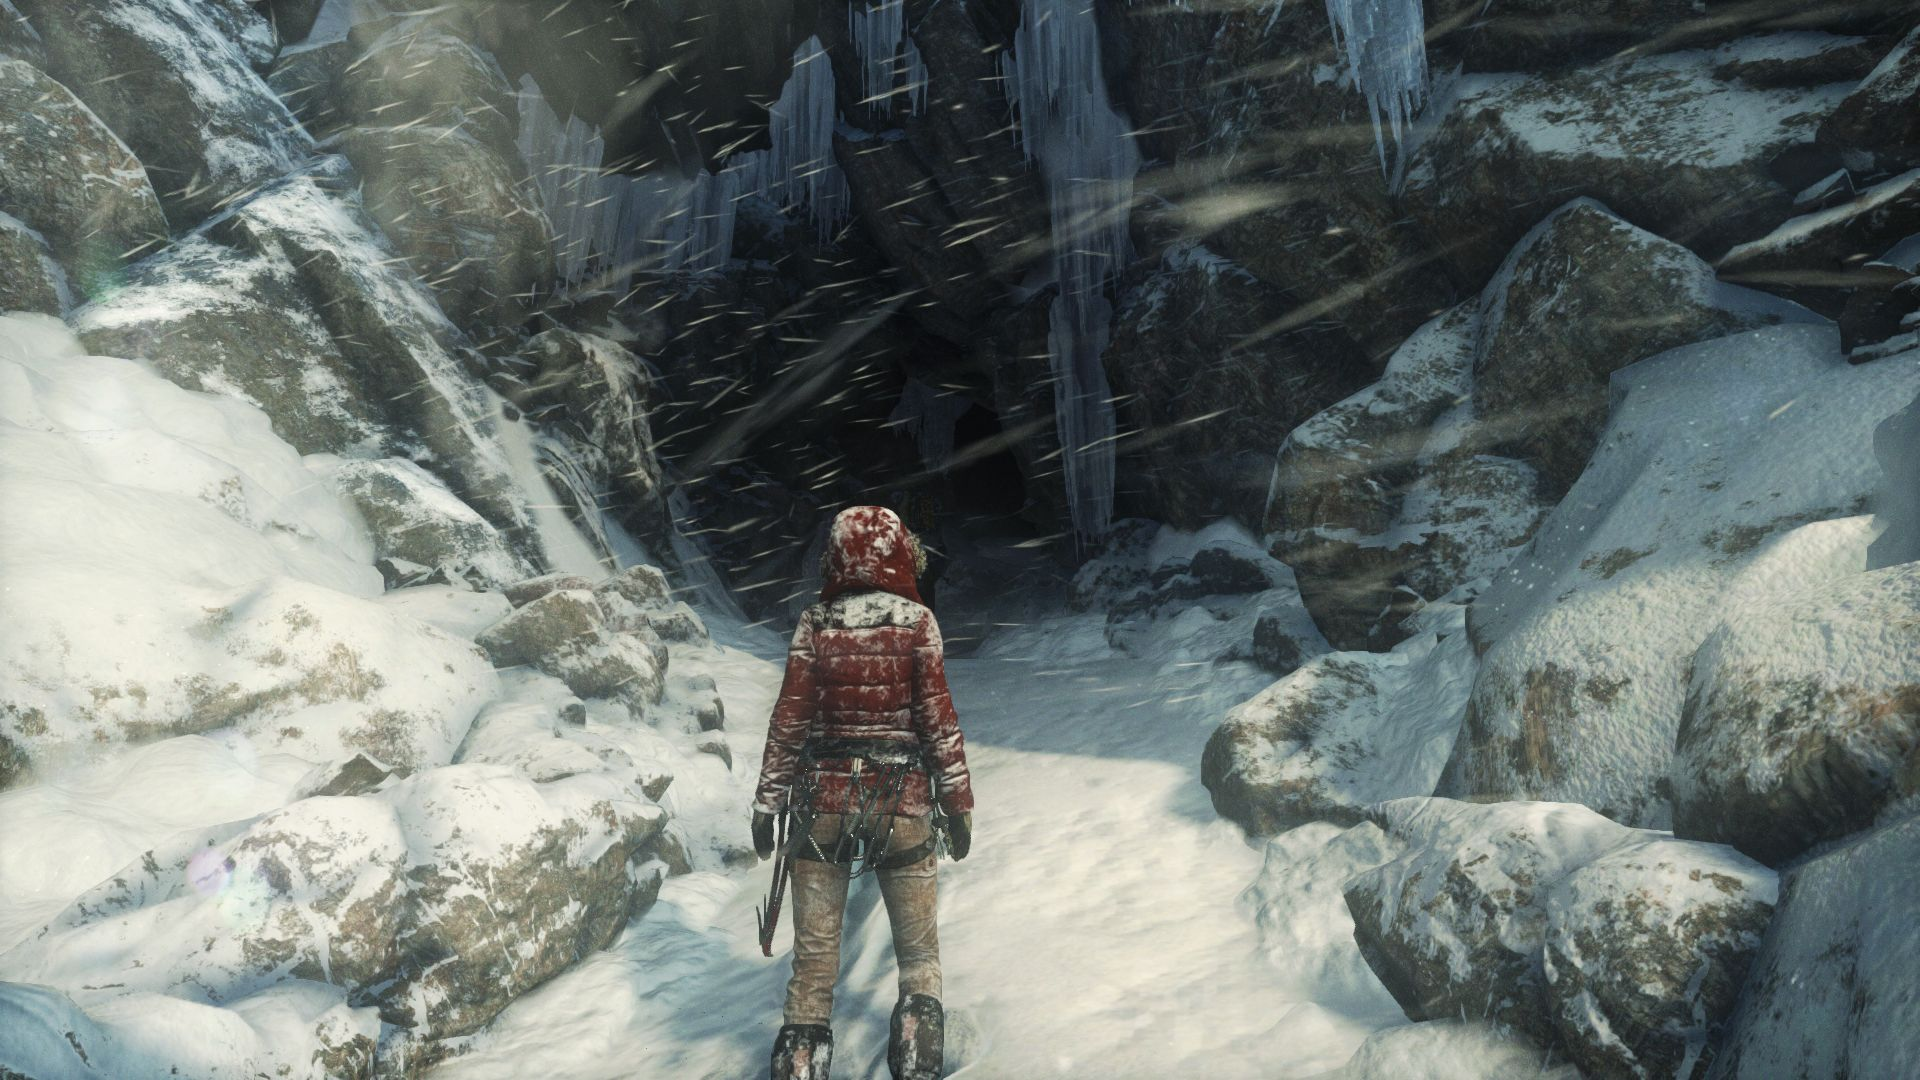 4e134a9317e53 Rise of the Tomb Raider Notebook Benchmarks - NotebookCheck.net Reviews